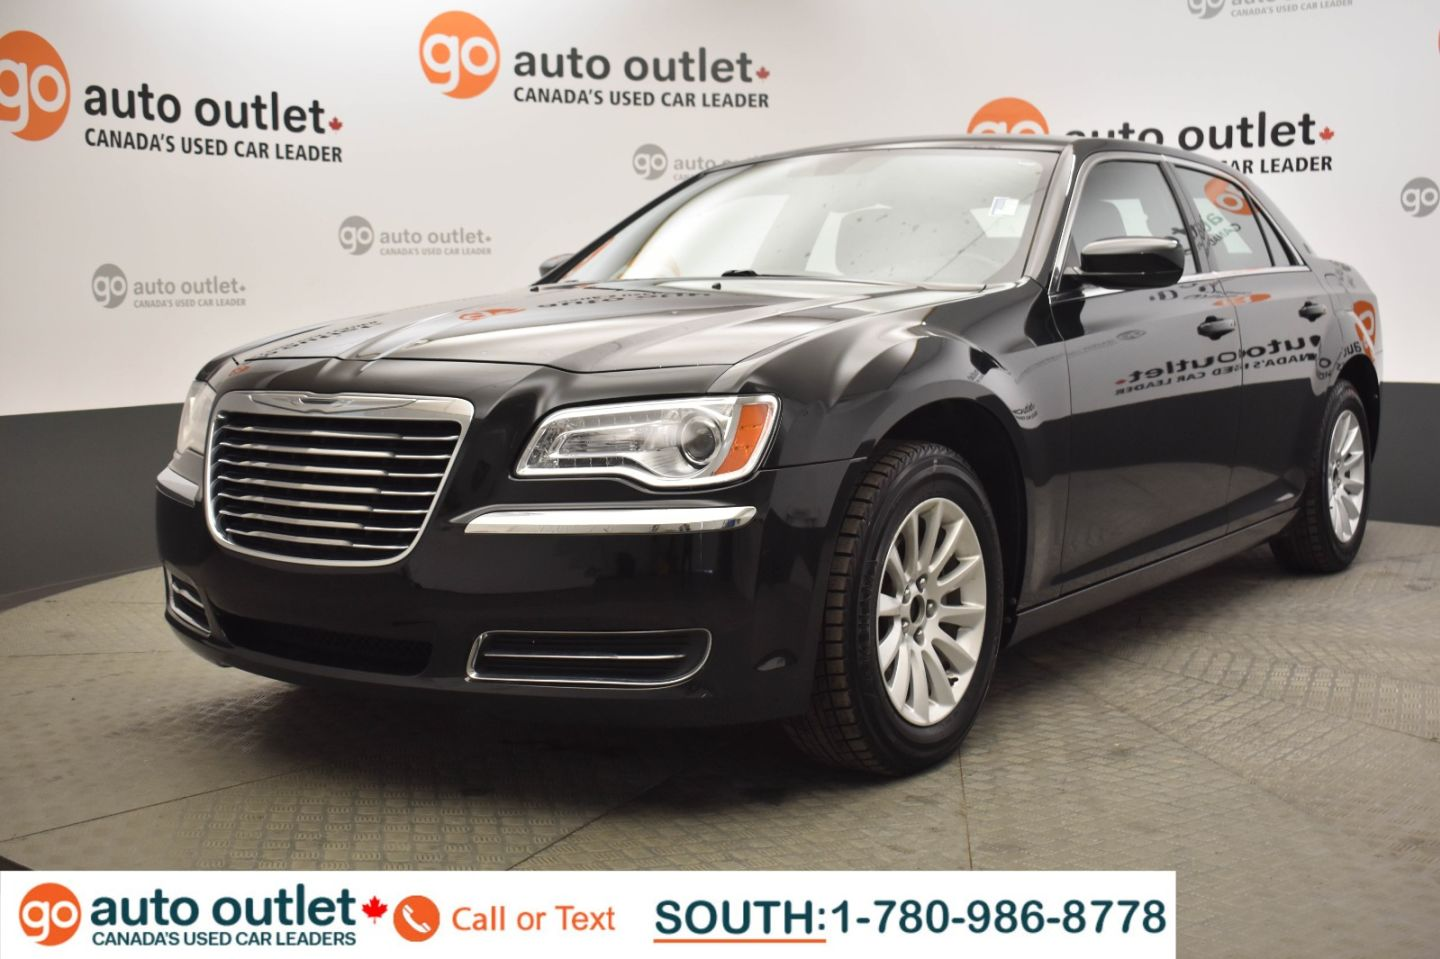 2011 Chrysler 300 Touring for sale in Leduc, Alberta